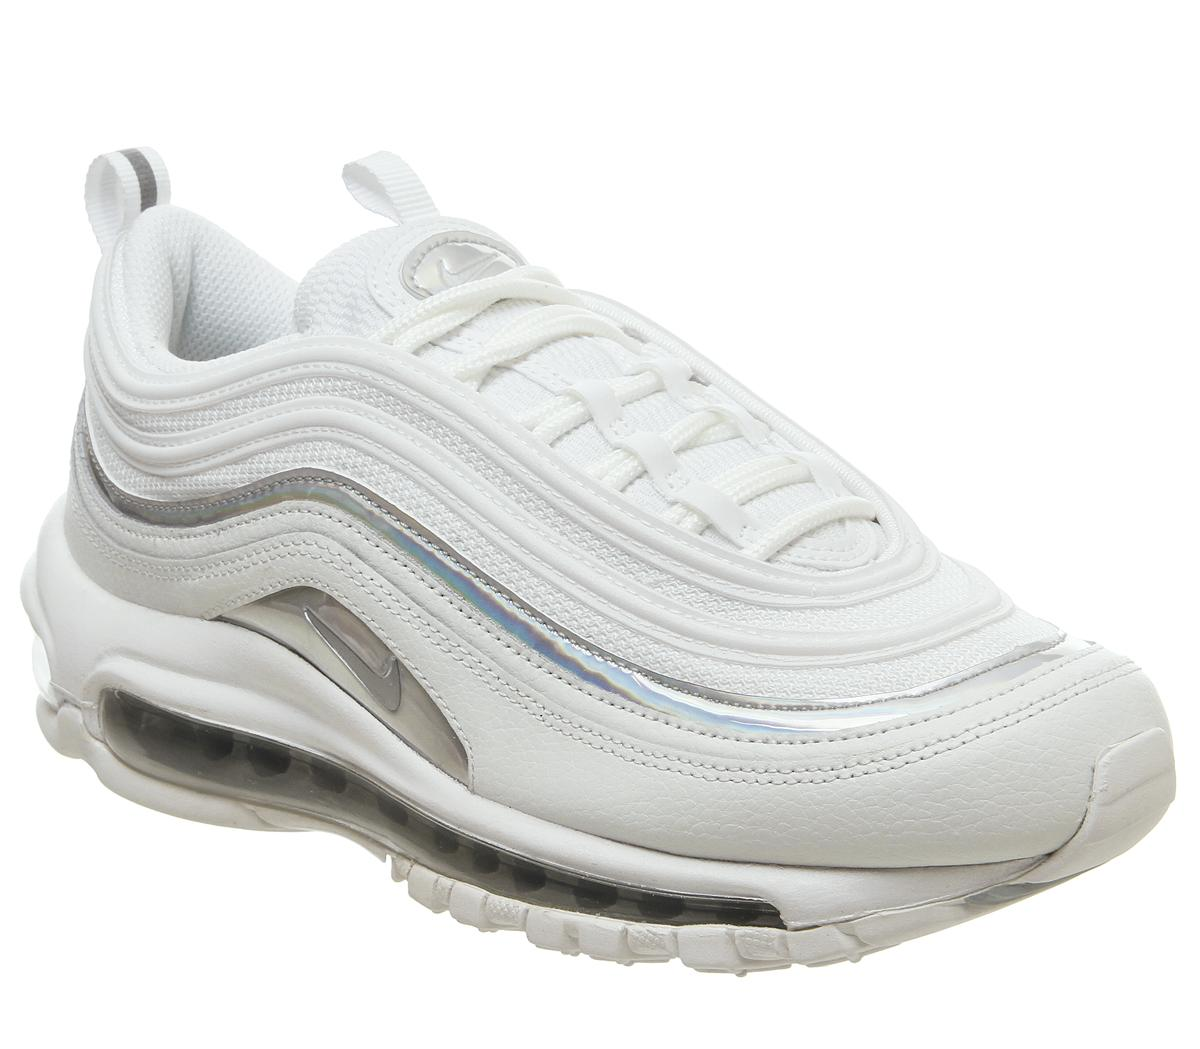 escándalo Kent estimular  Nike Air Max 97 Trainers Summit White Metallic Silver - Hers trainers